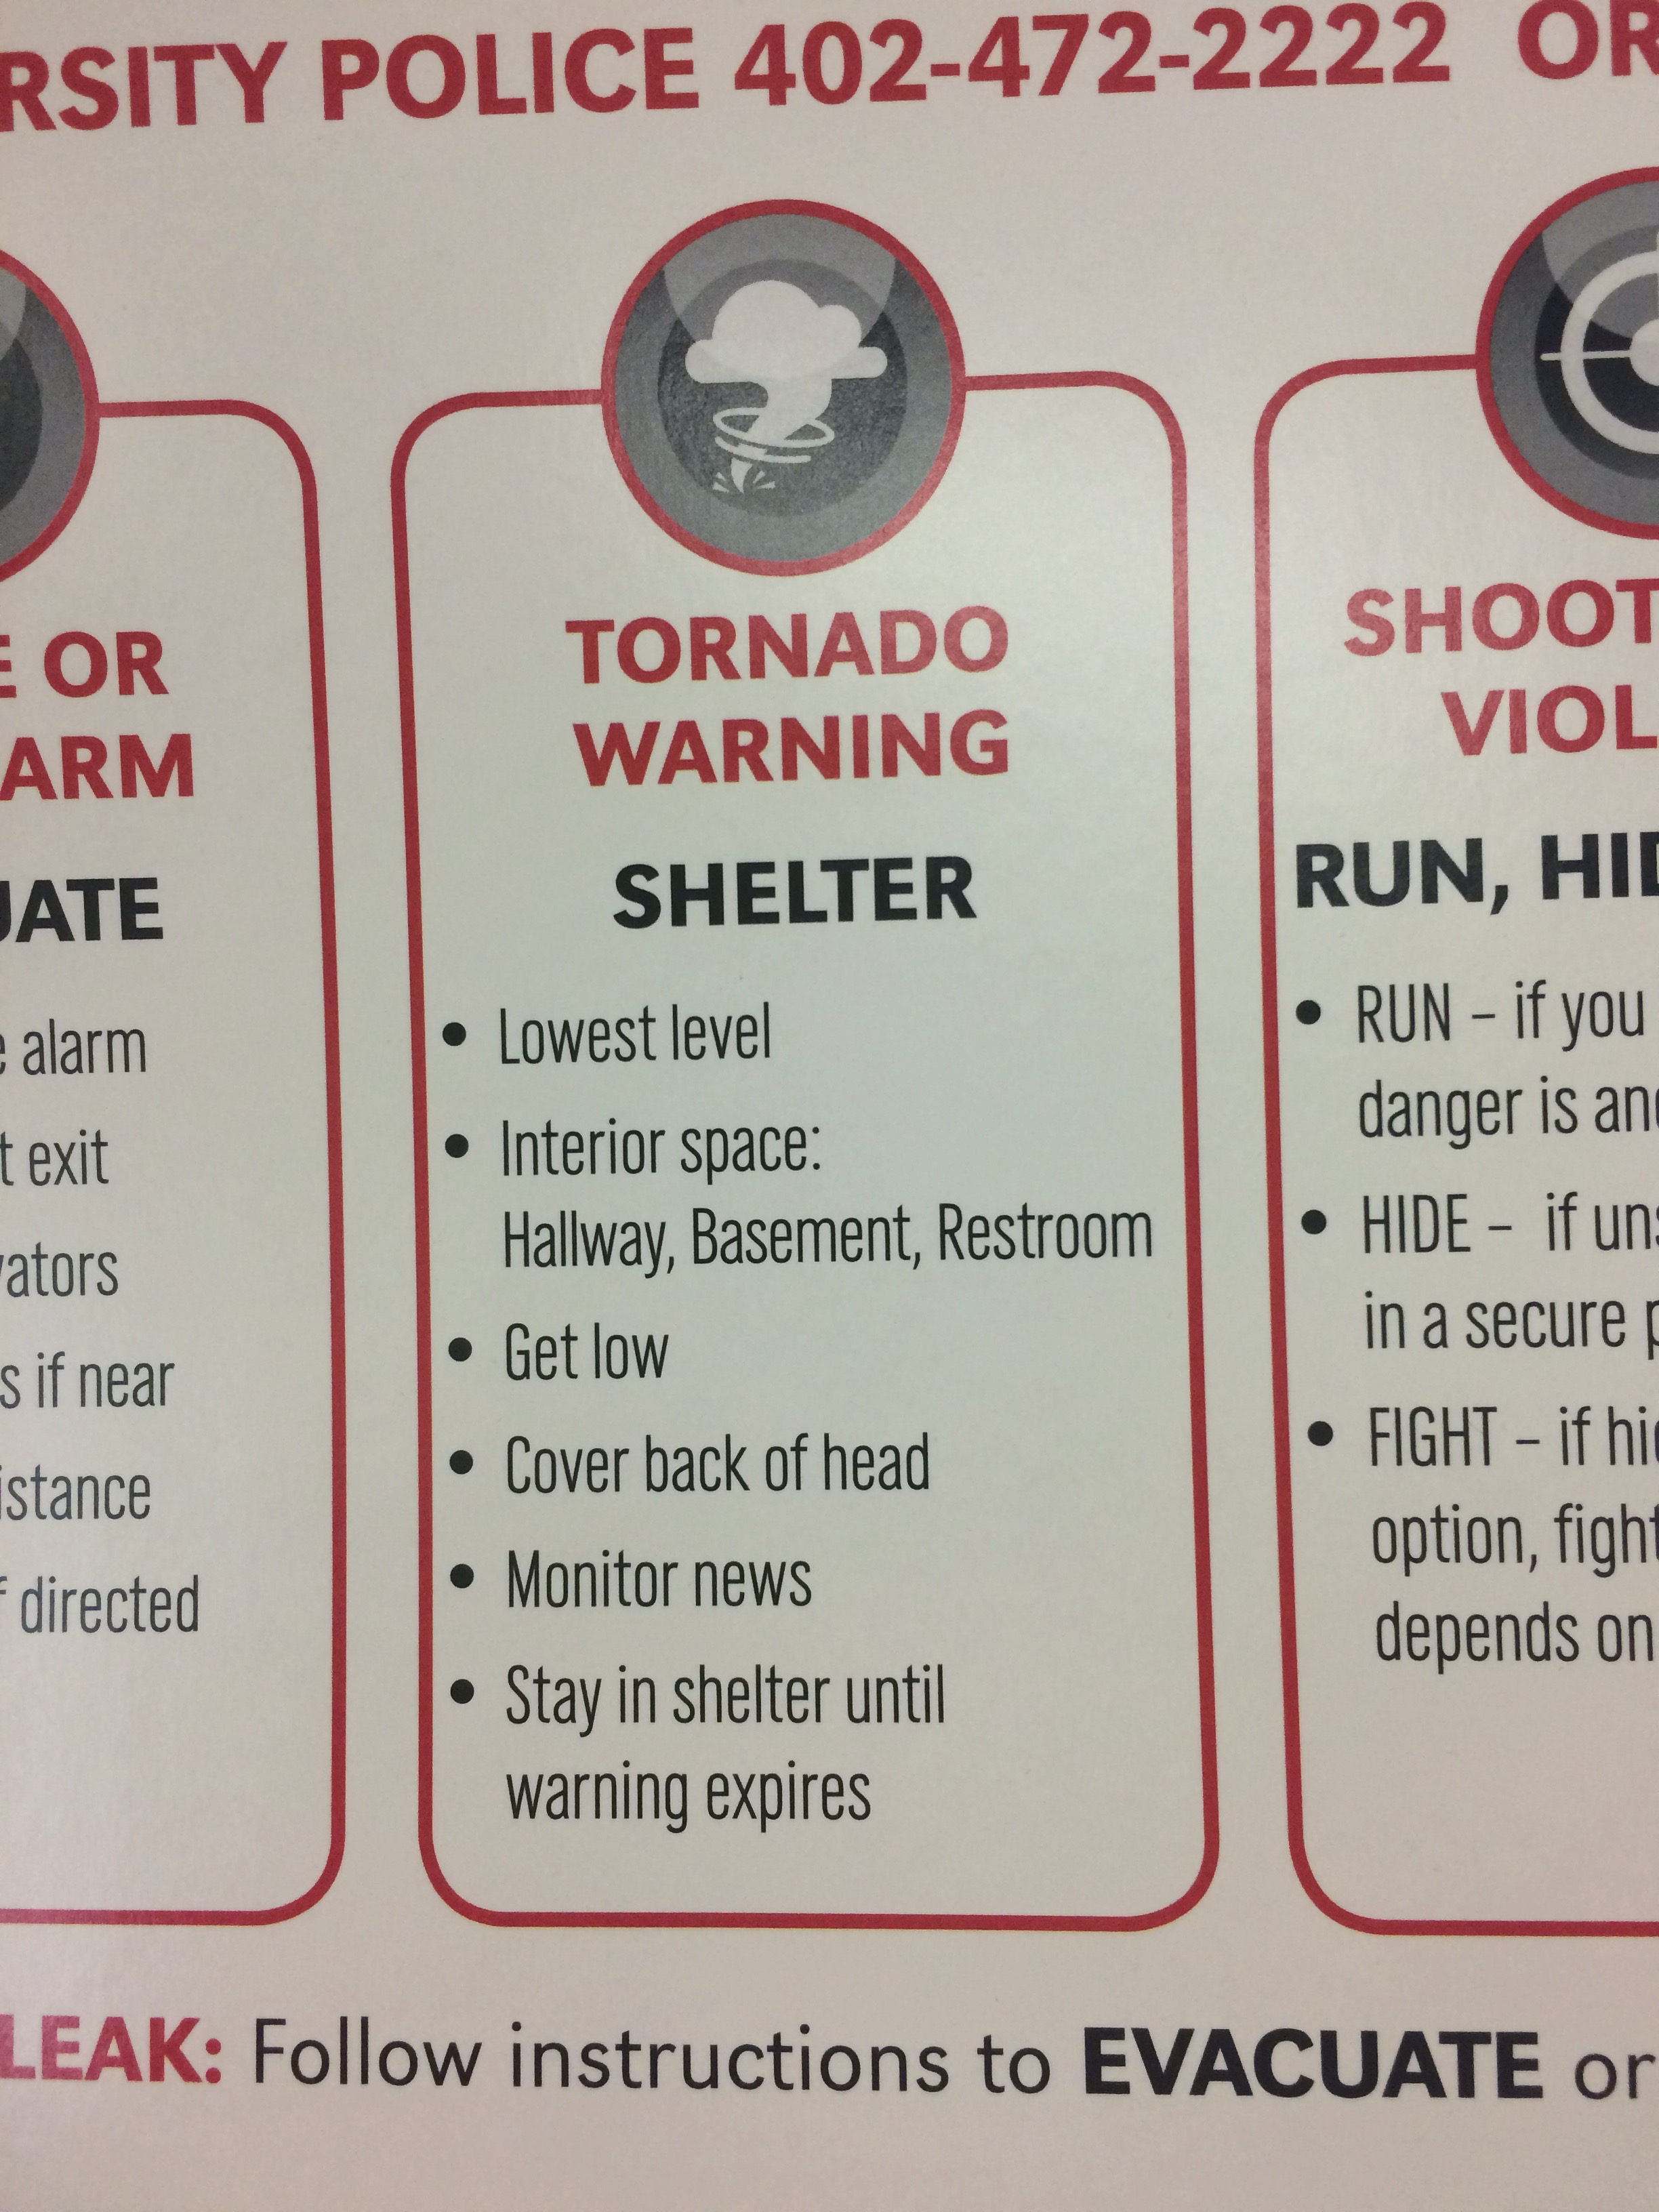 In the case of a tornado, know what to do. Learn more at http://emergency.unl.edu/procedure/tornado